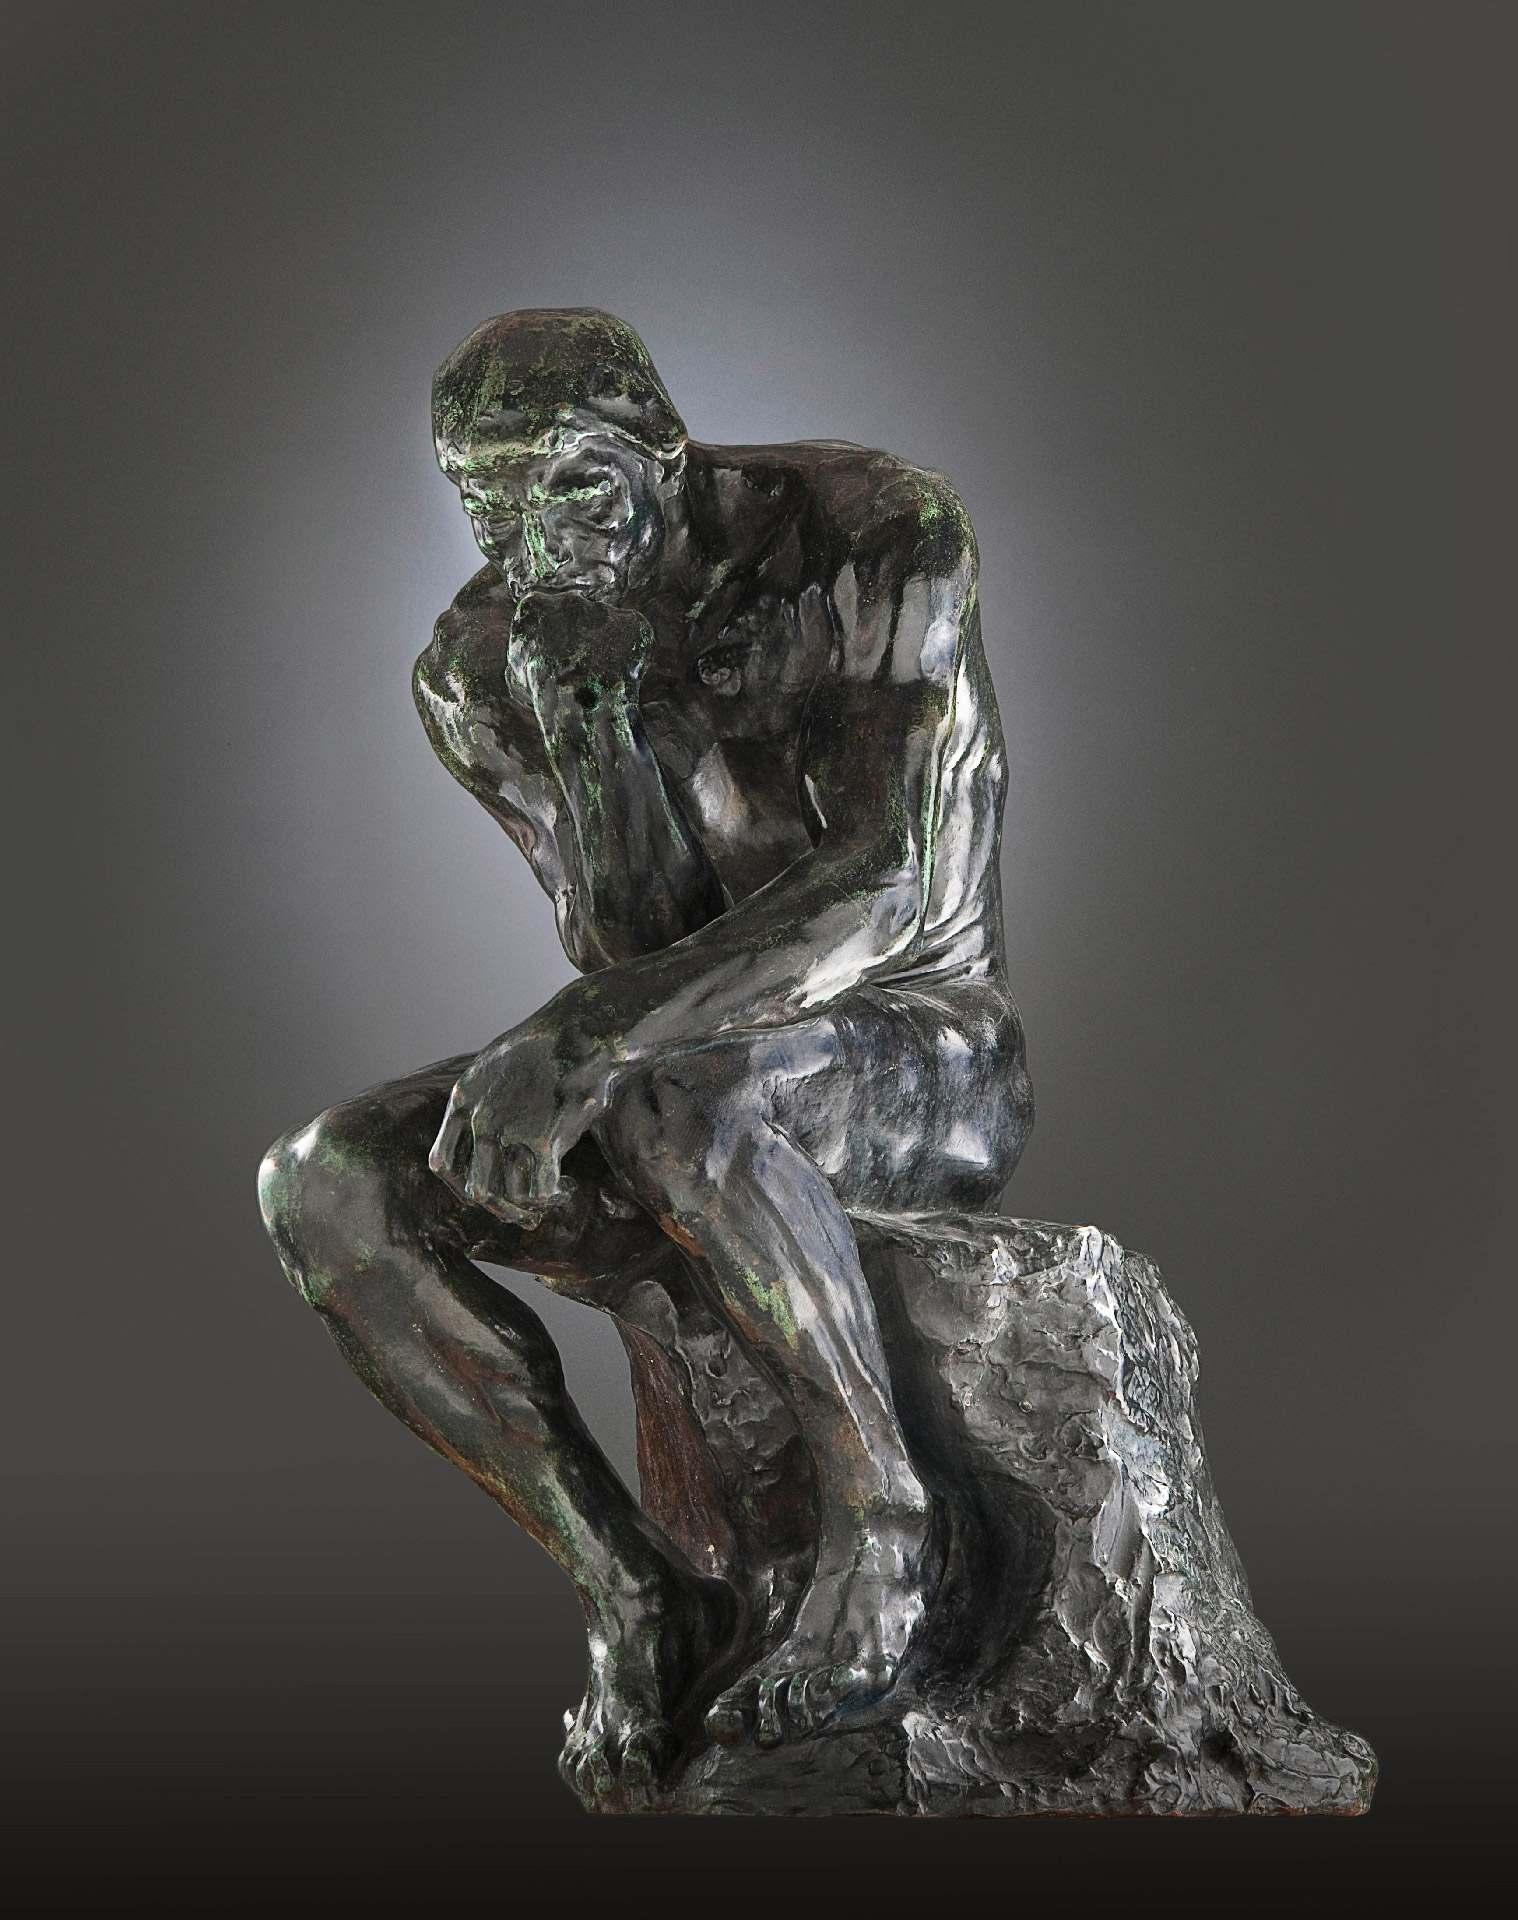 Auguste Rodin, The Thinker, 1881-1882 (cast between 1902 and 1909), bronze, 71 x 43 x 56 cm, cast Alexis Rudier, Paris. Purchase, John W. Tempest Fund.